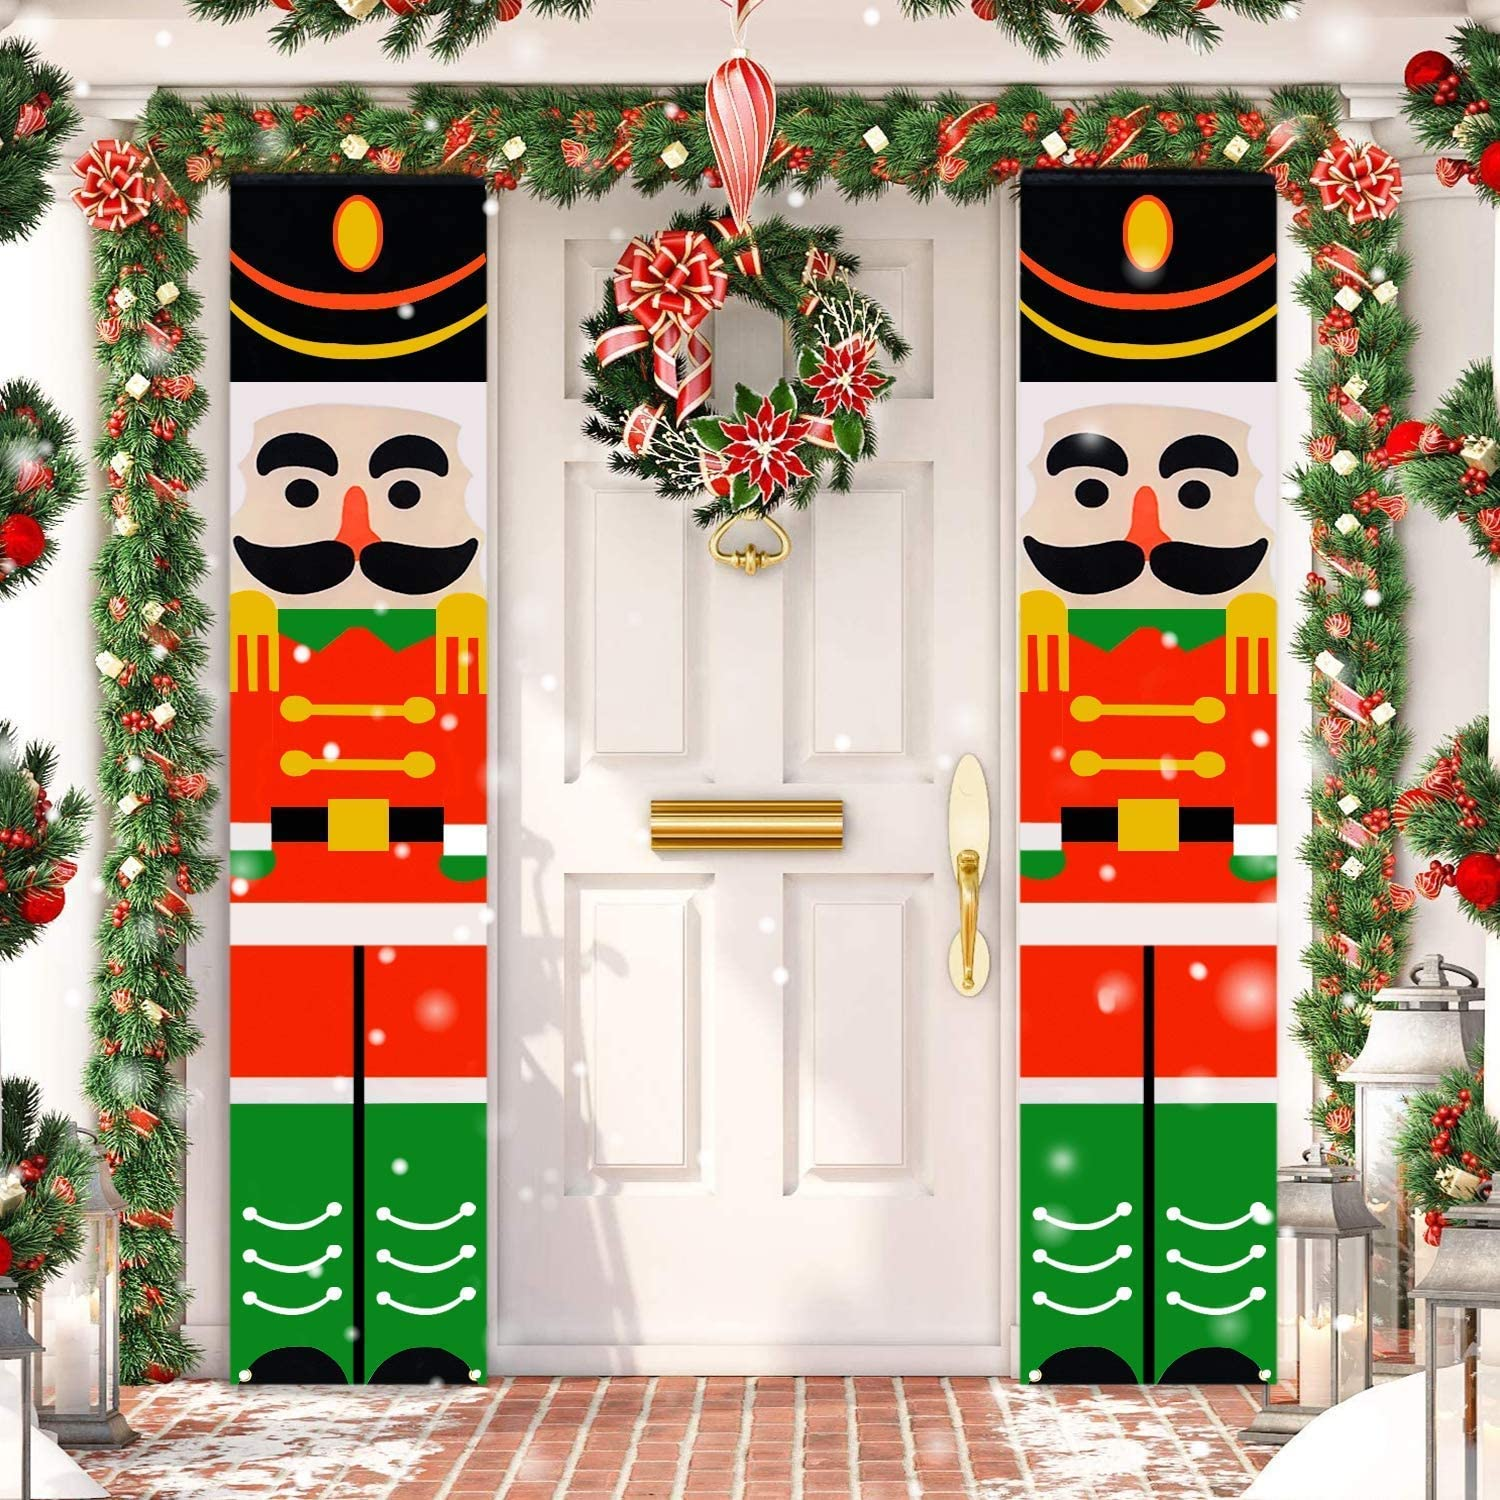 Veaoiy Nutcracker Christmas Decorations Porch Banner 2 PCS 14 x 74 Inch Front Door Signs Xmas Decor Soldier Model Hanging Banners for Wall Outdoor Indoor Garden Home Party Yard Holiday (style1)